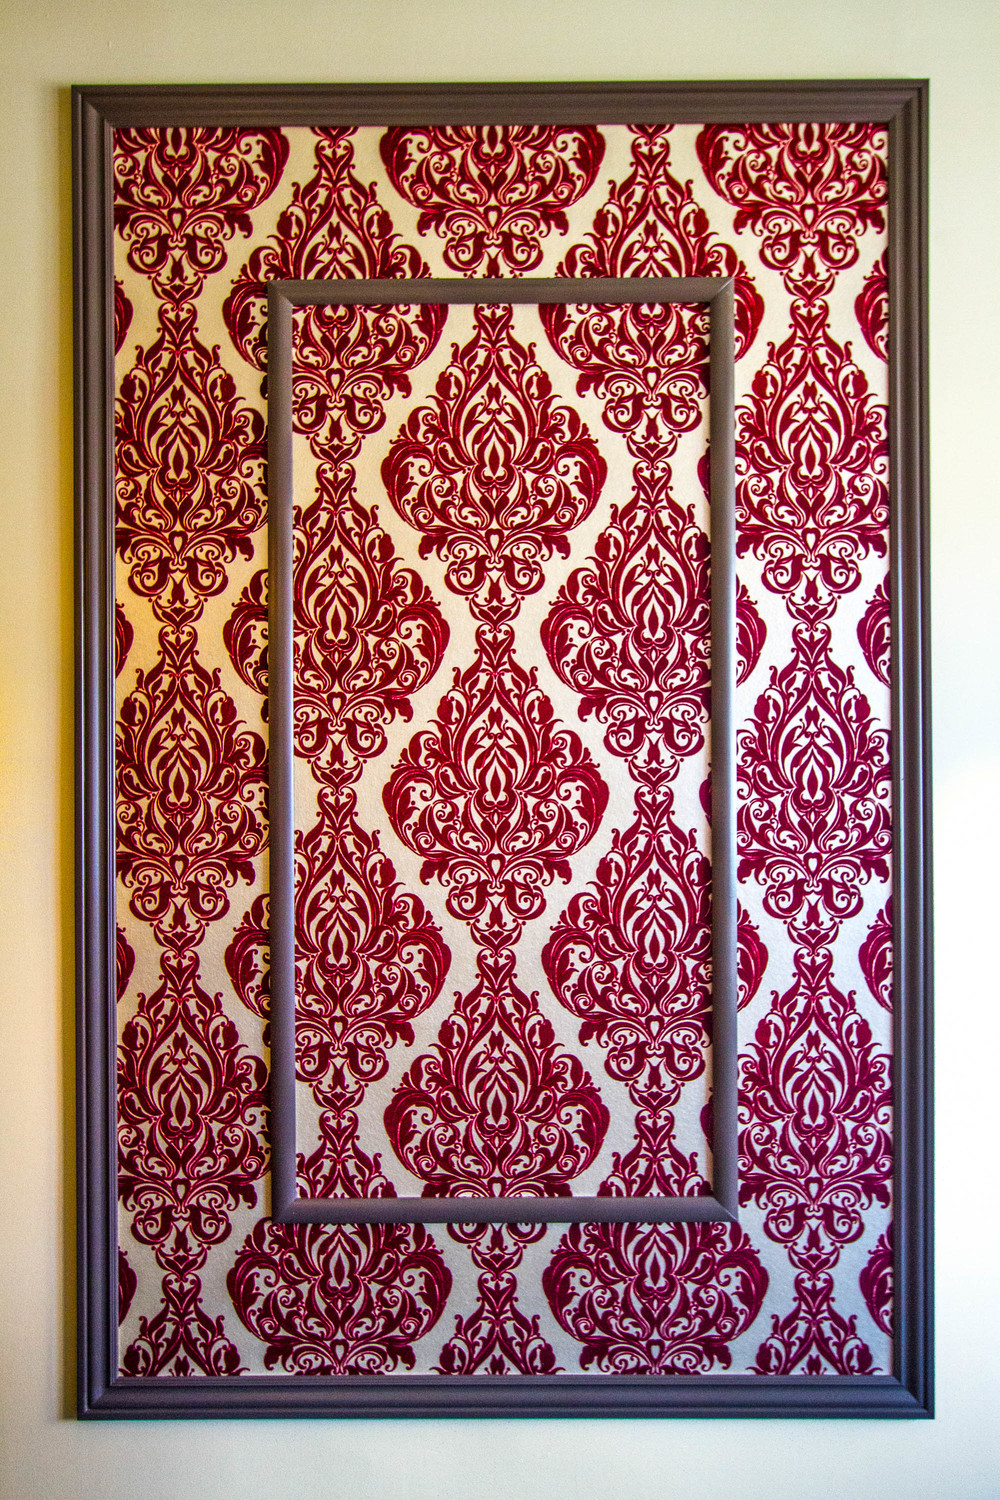 Flocked Damask Wallpaper in Large Double Frame